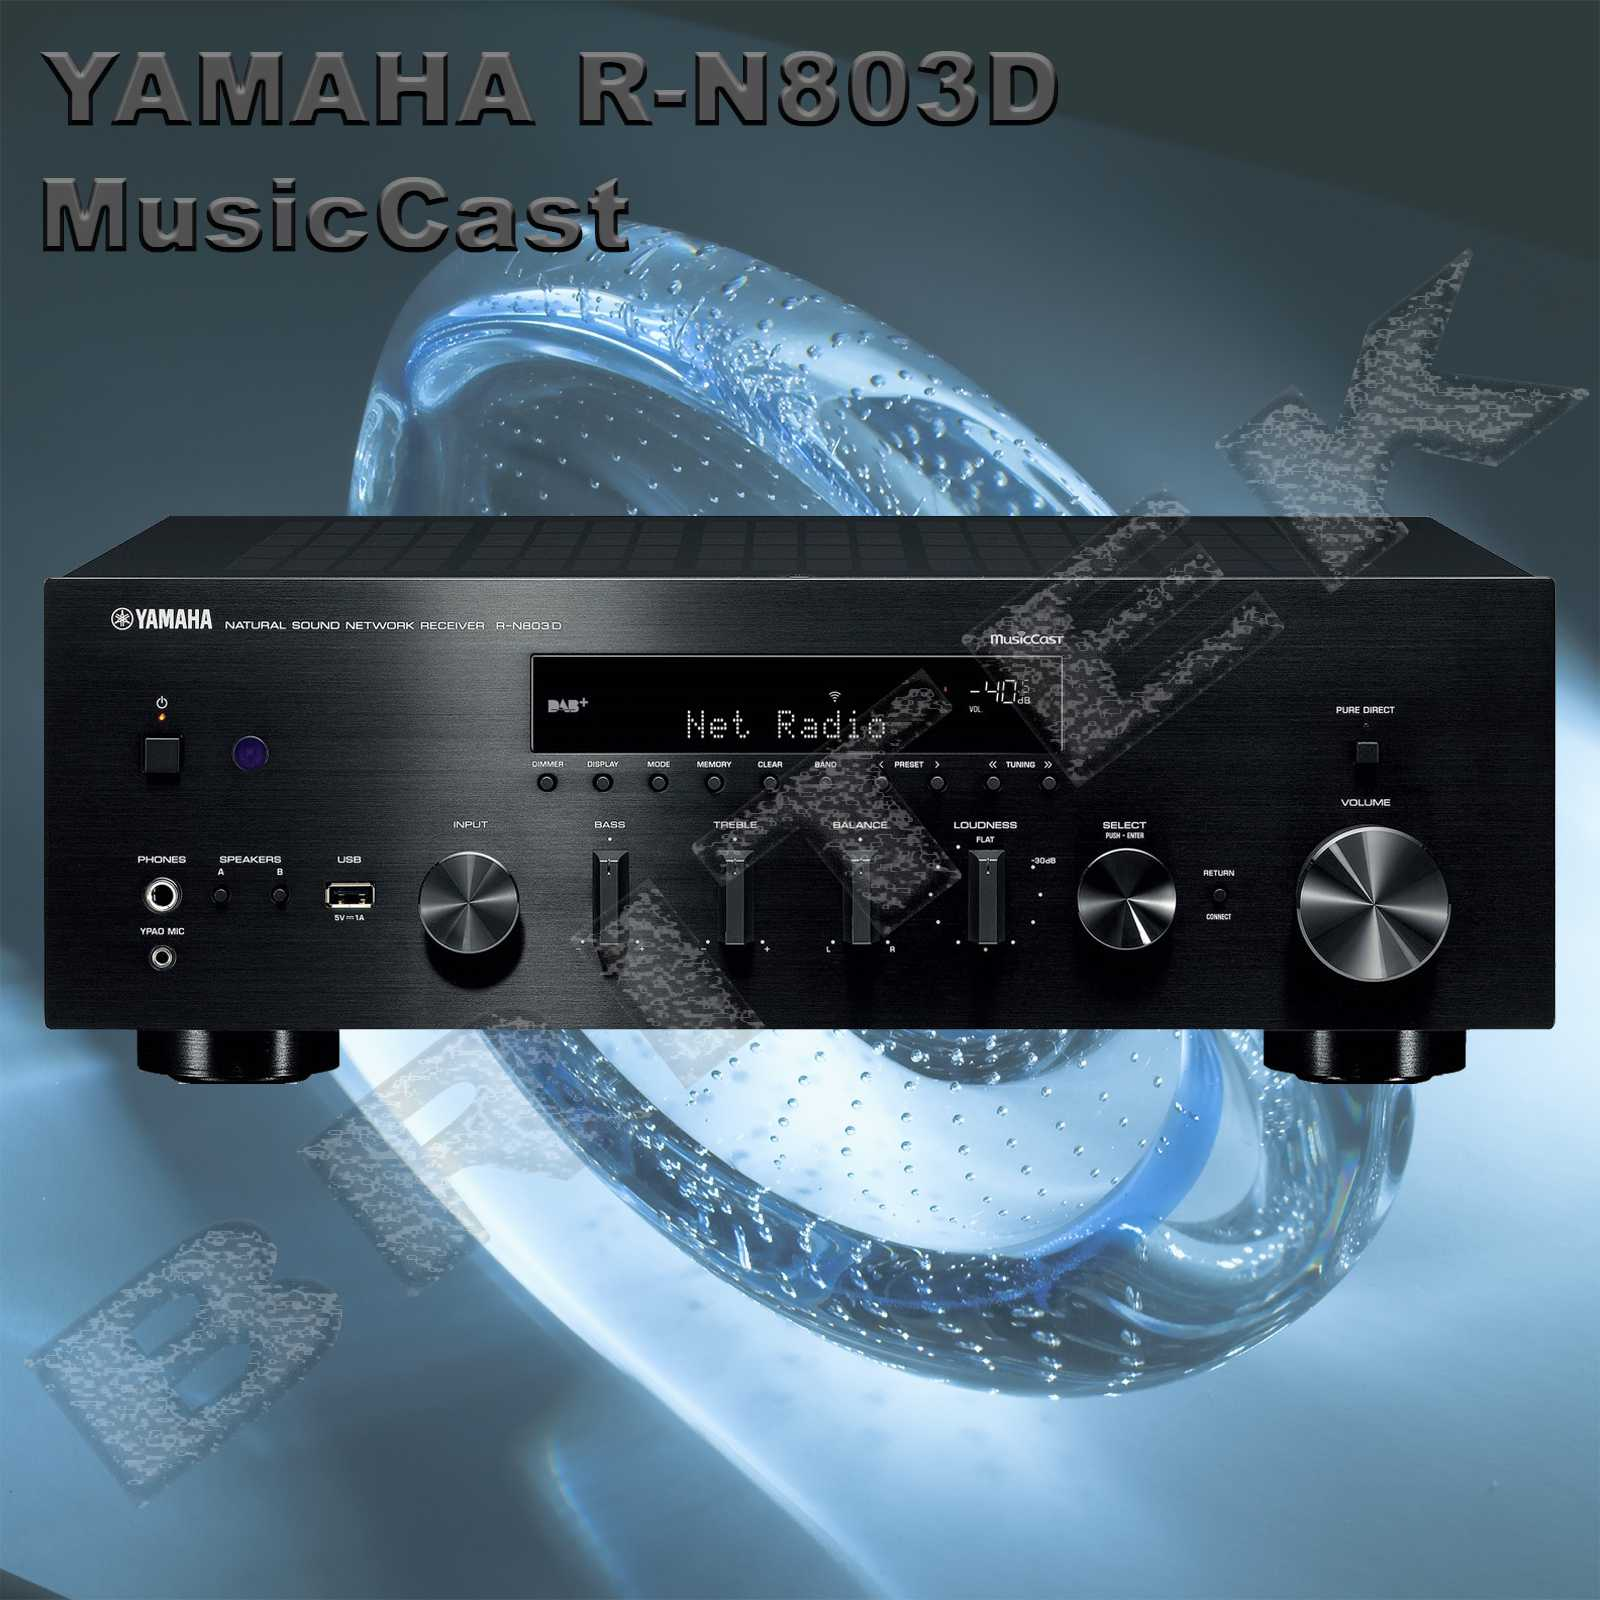 yamaha r n803d s ov stereo receiver 2x160w. Black Bedroom Furniture Sets. Home Design Ideas